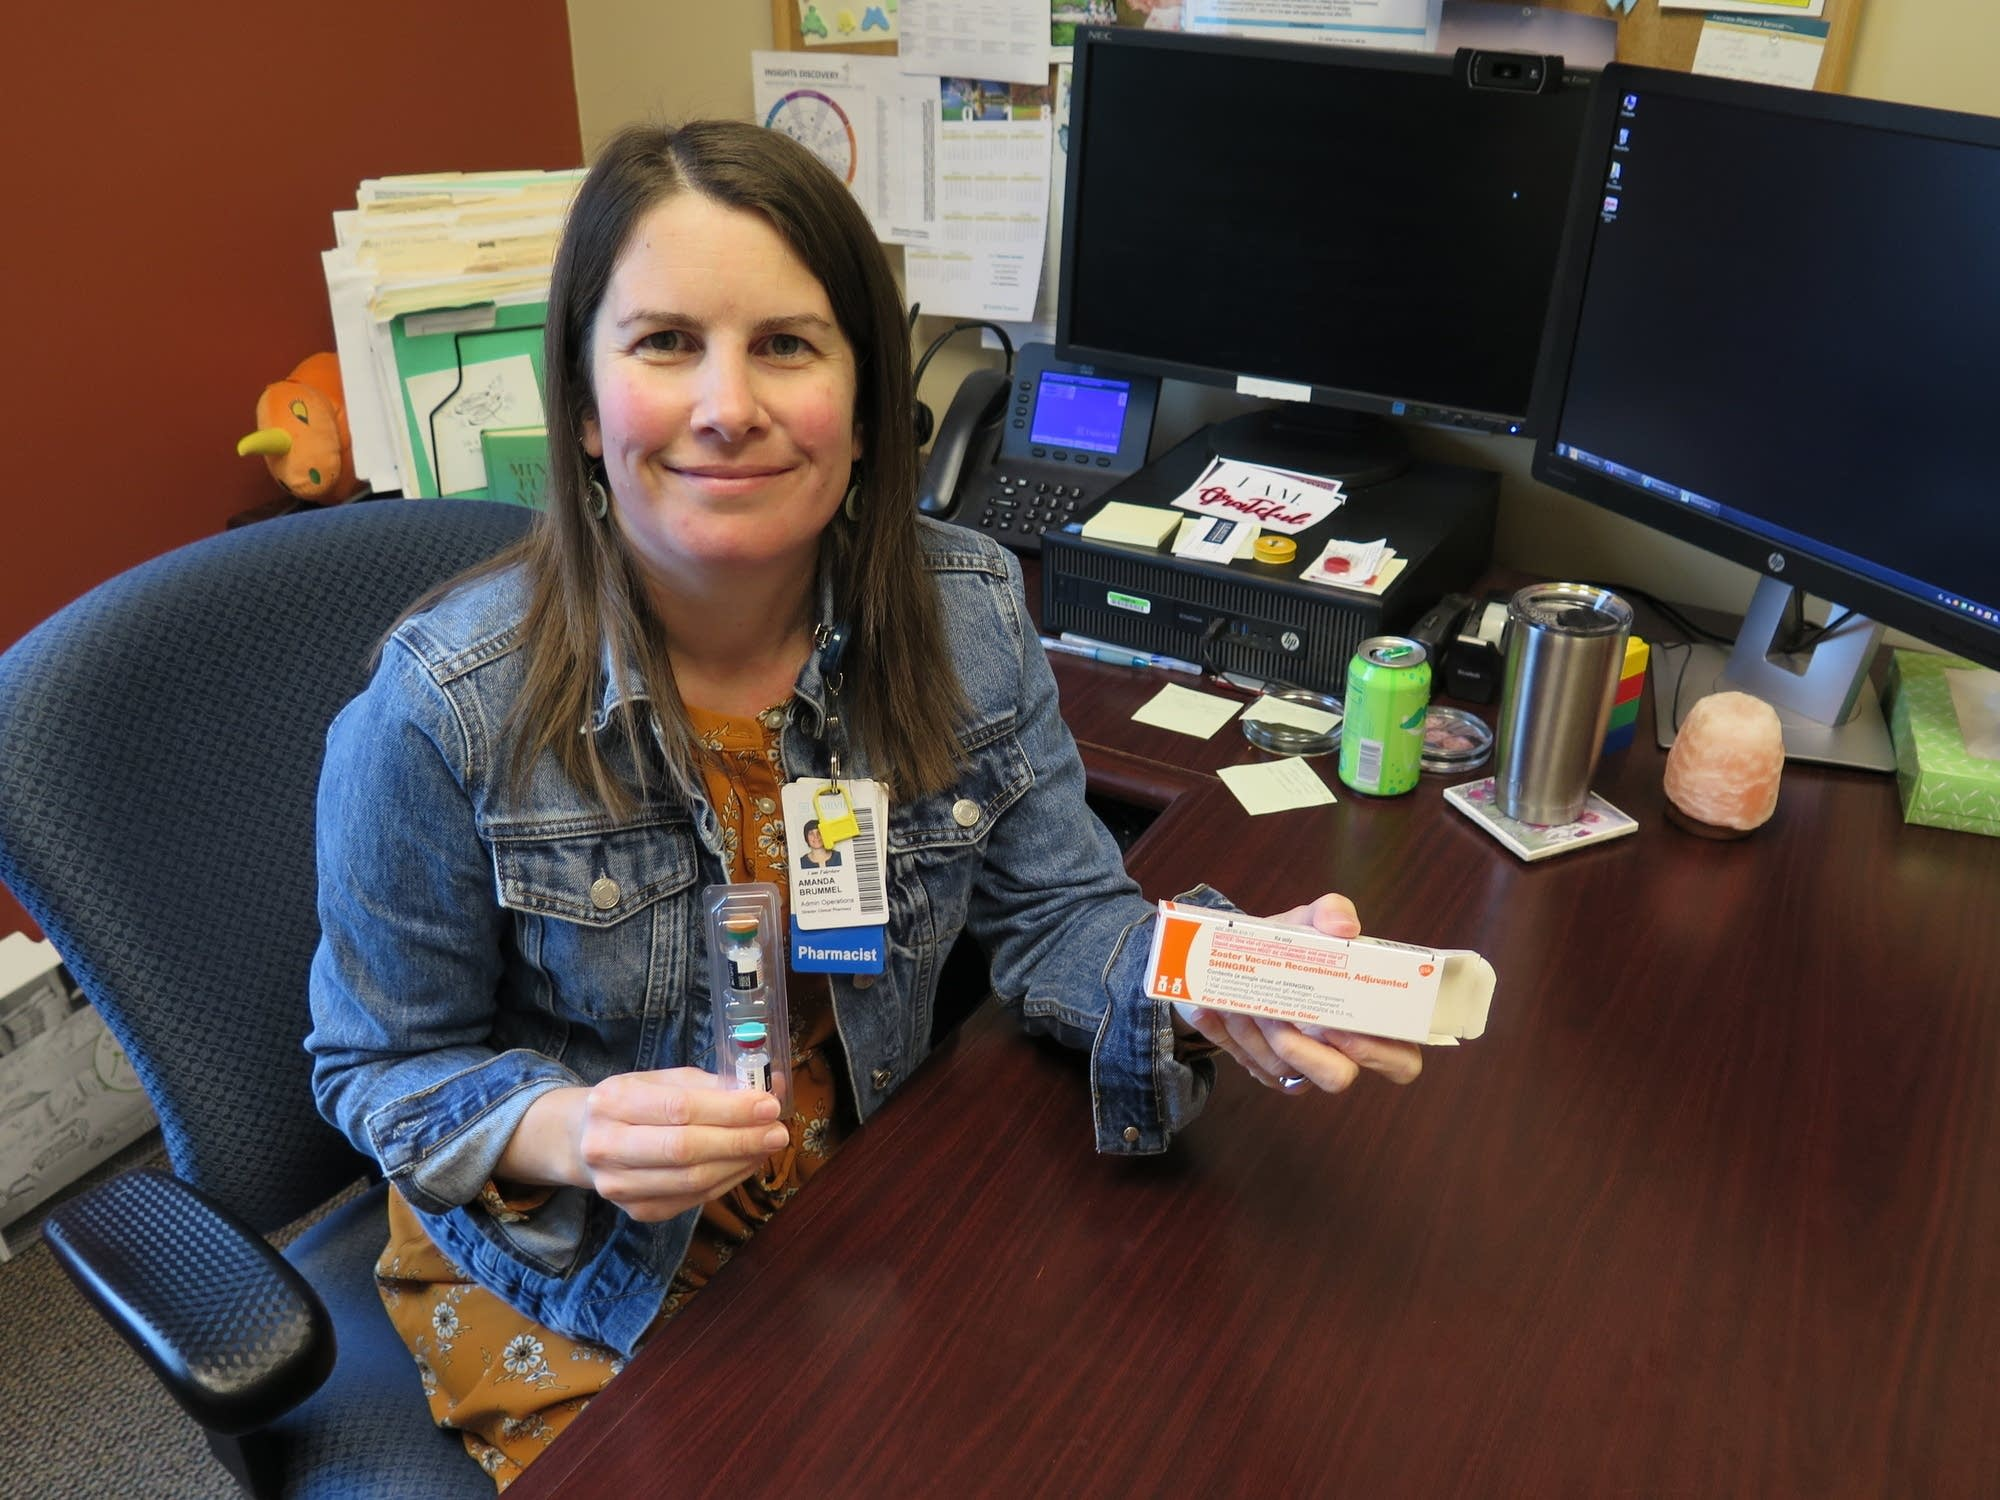 Amanda Brummel oversees pharmacies at Fairview's clinics